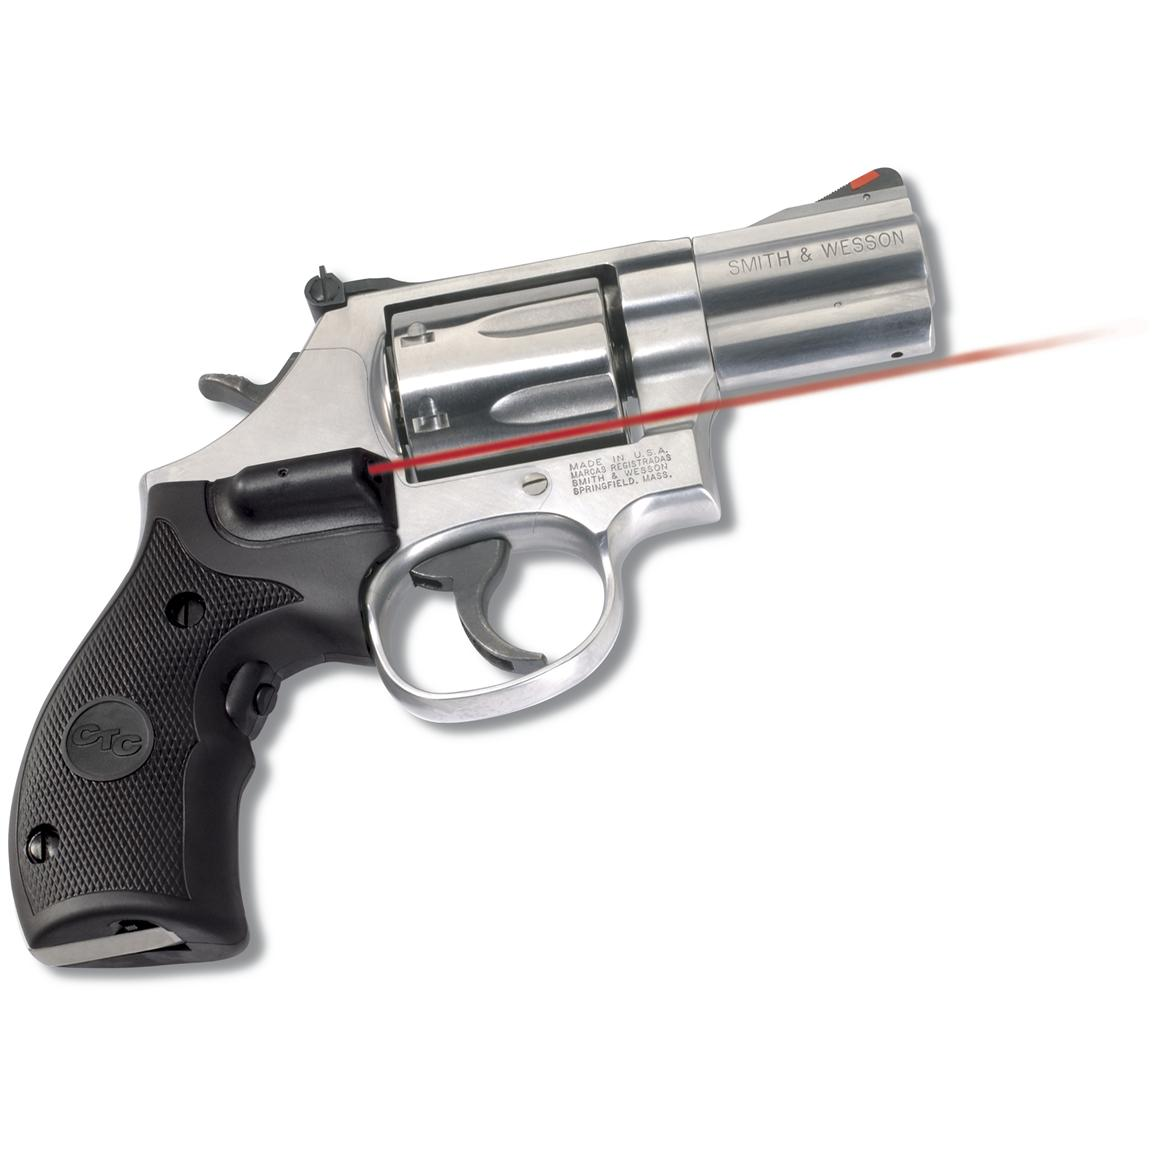 Crimson Trace Revolver Lasergrips for Smith & Wesson K- and L-Frames